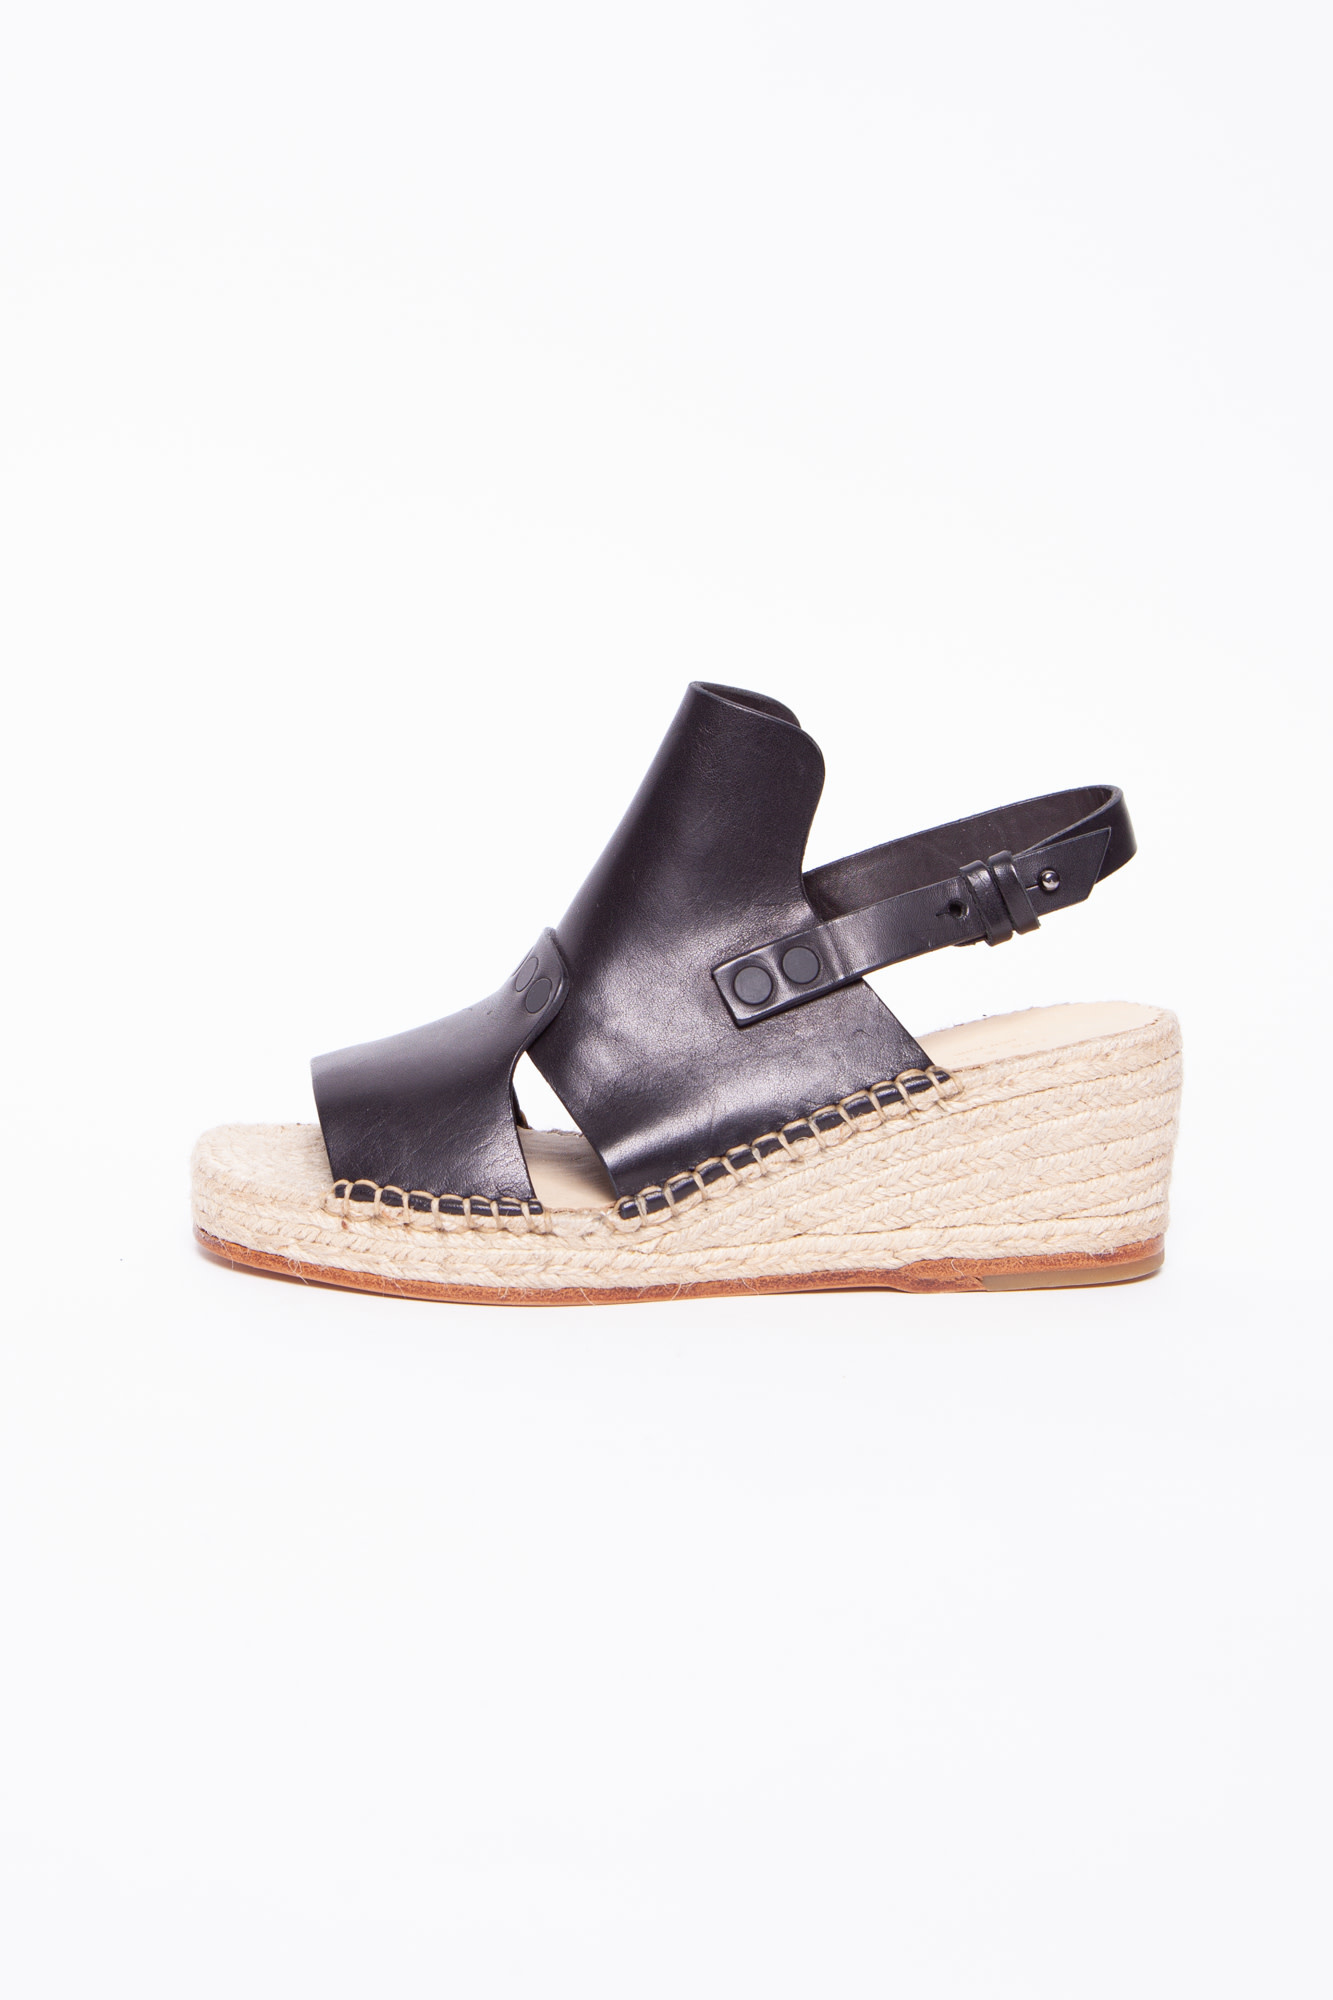 Rag & Bone BLACK LEATHER ESPADRILLES